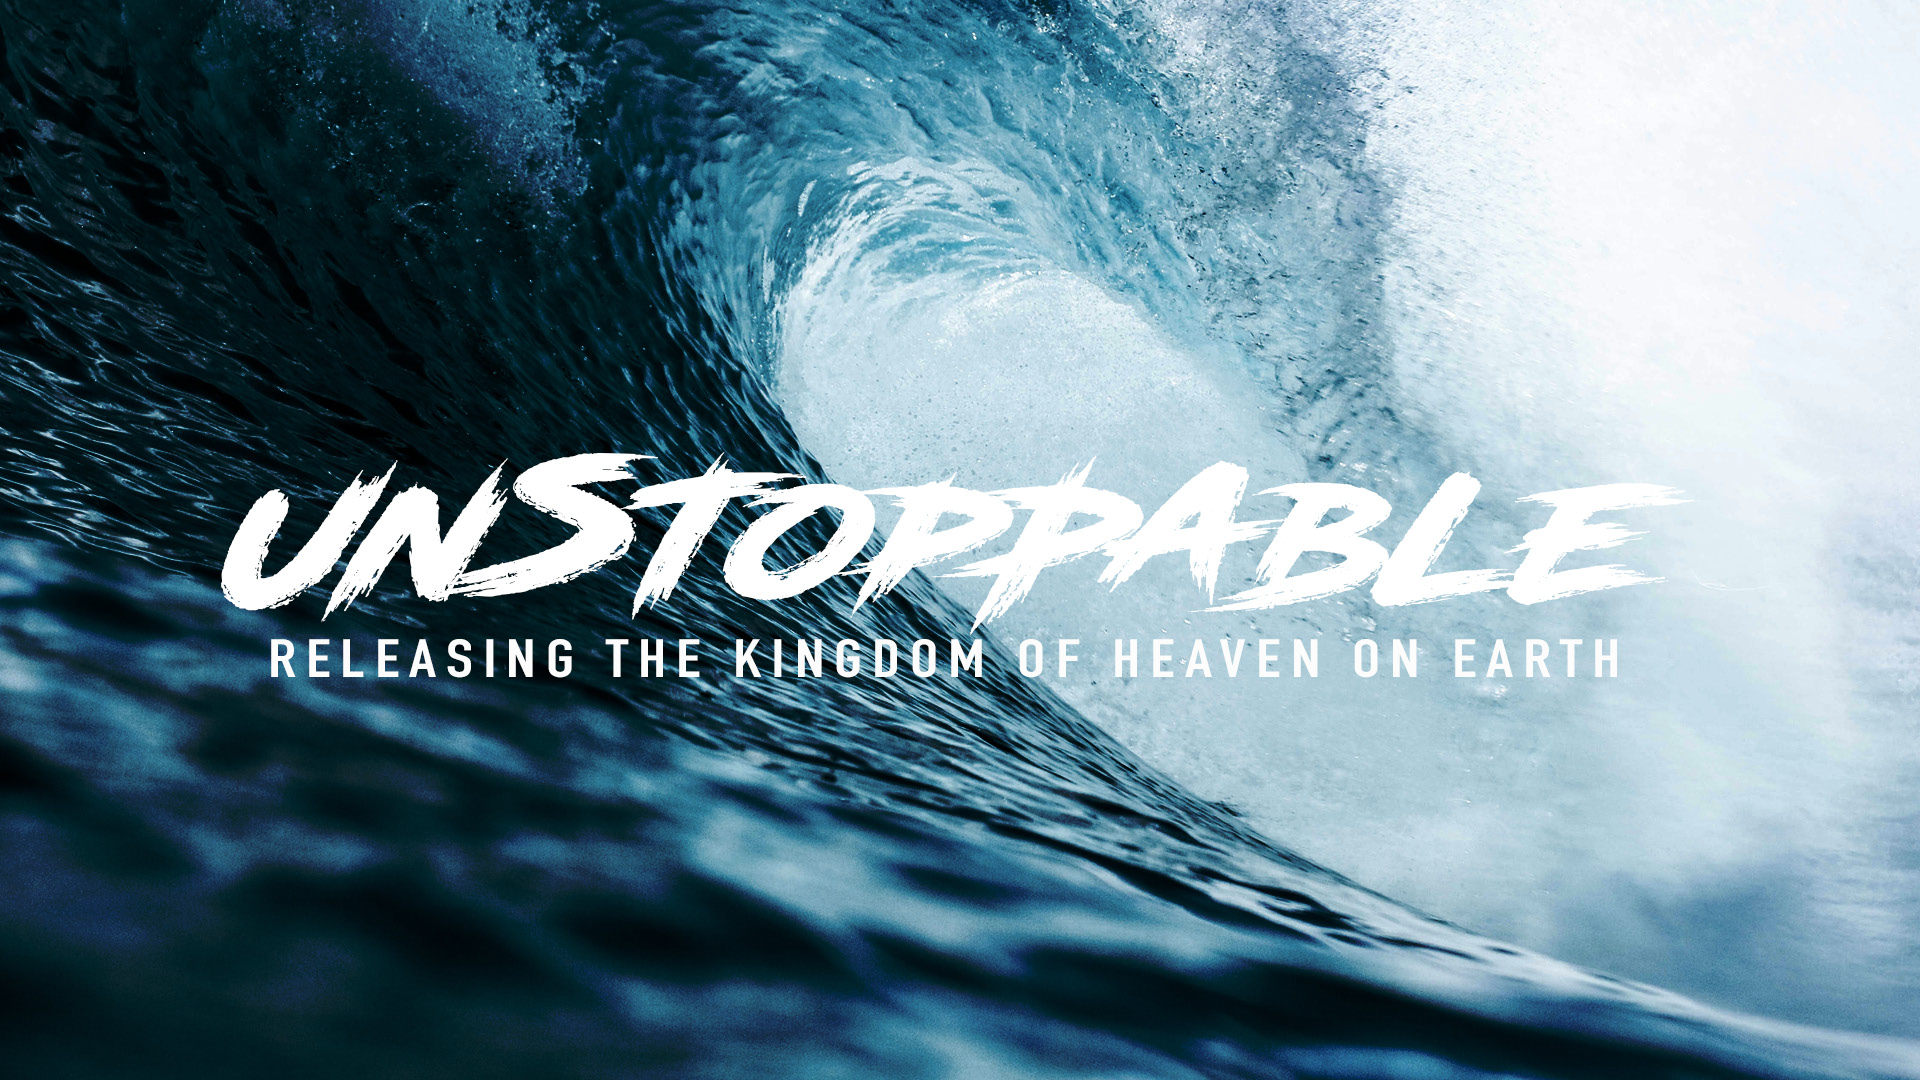 Unstoppable - releasing the kingdom of heaven on earth